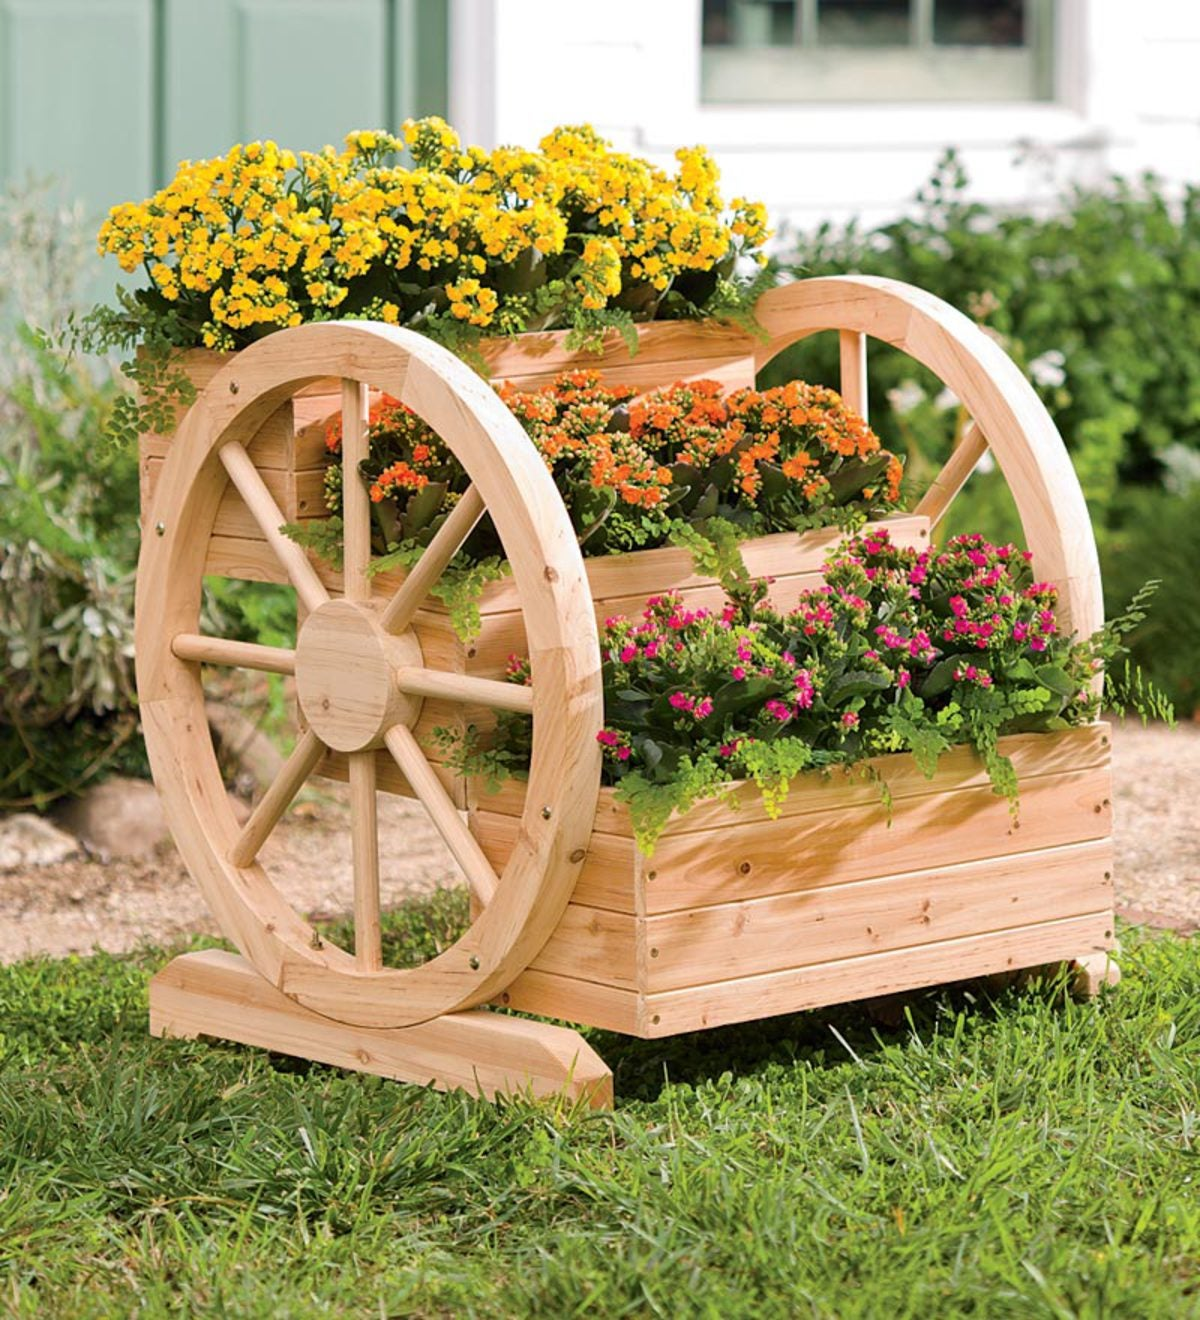 Solid Wood Wagon Wheel Tiered Planter Plowhearth